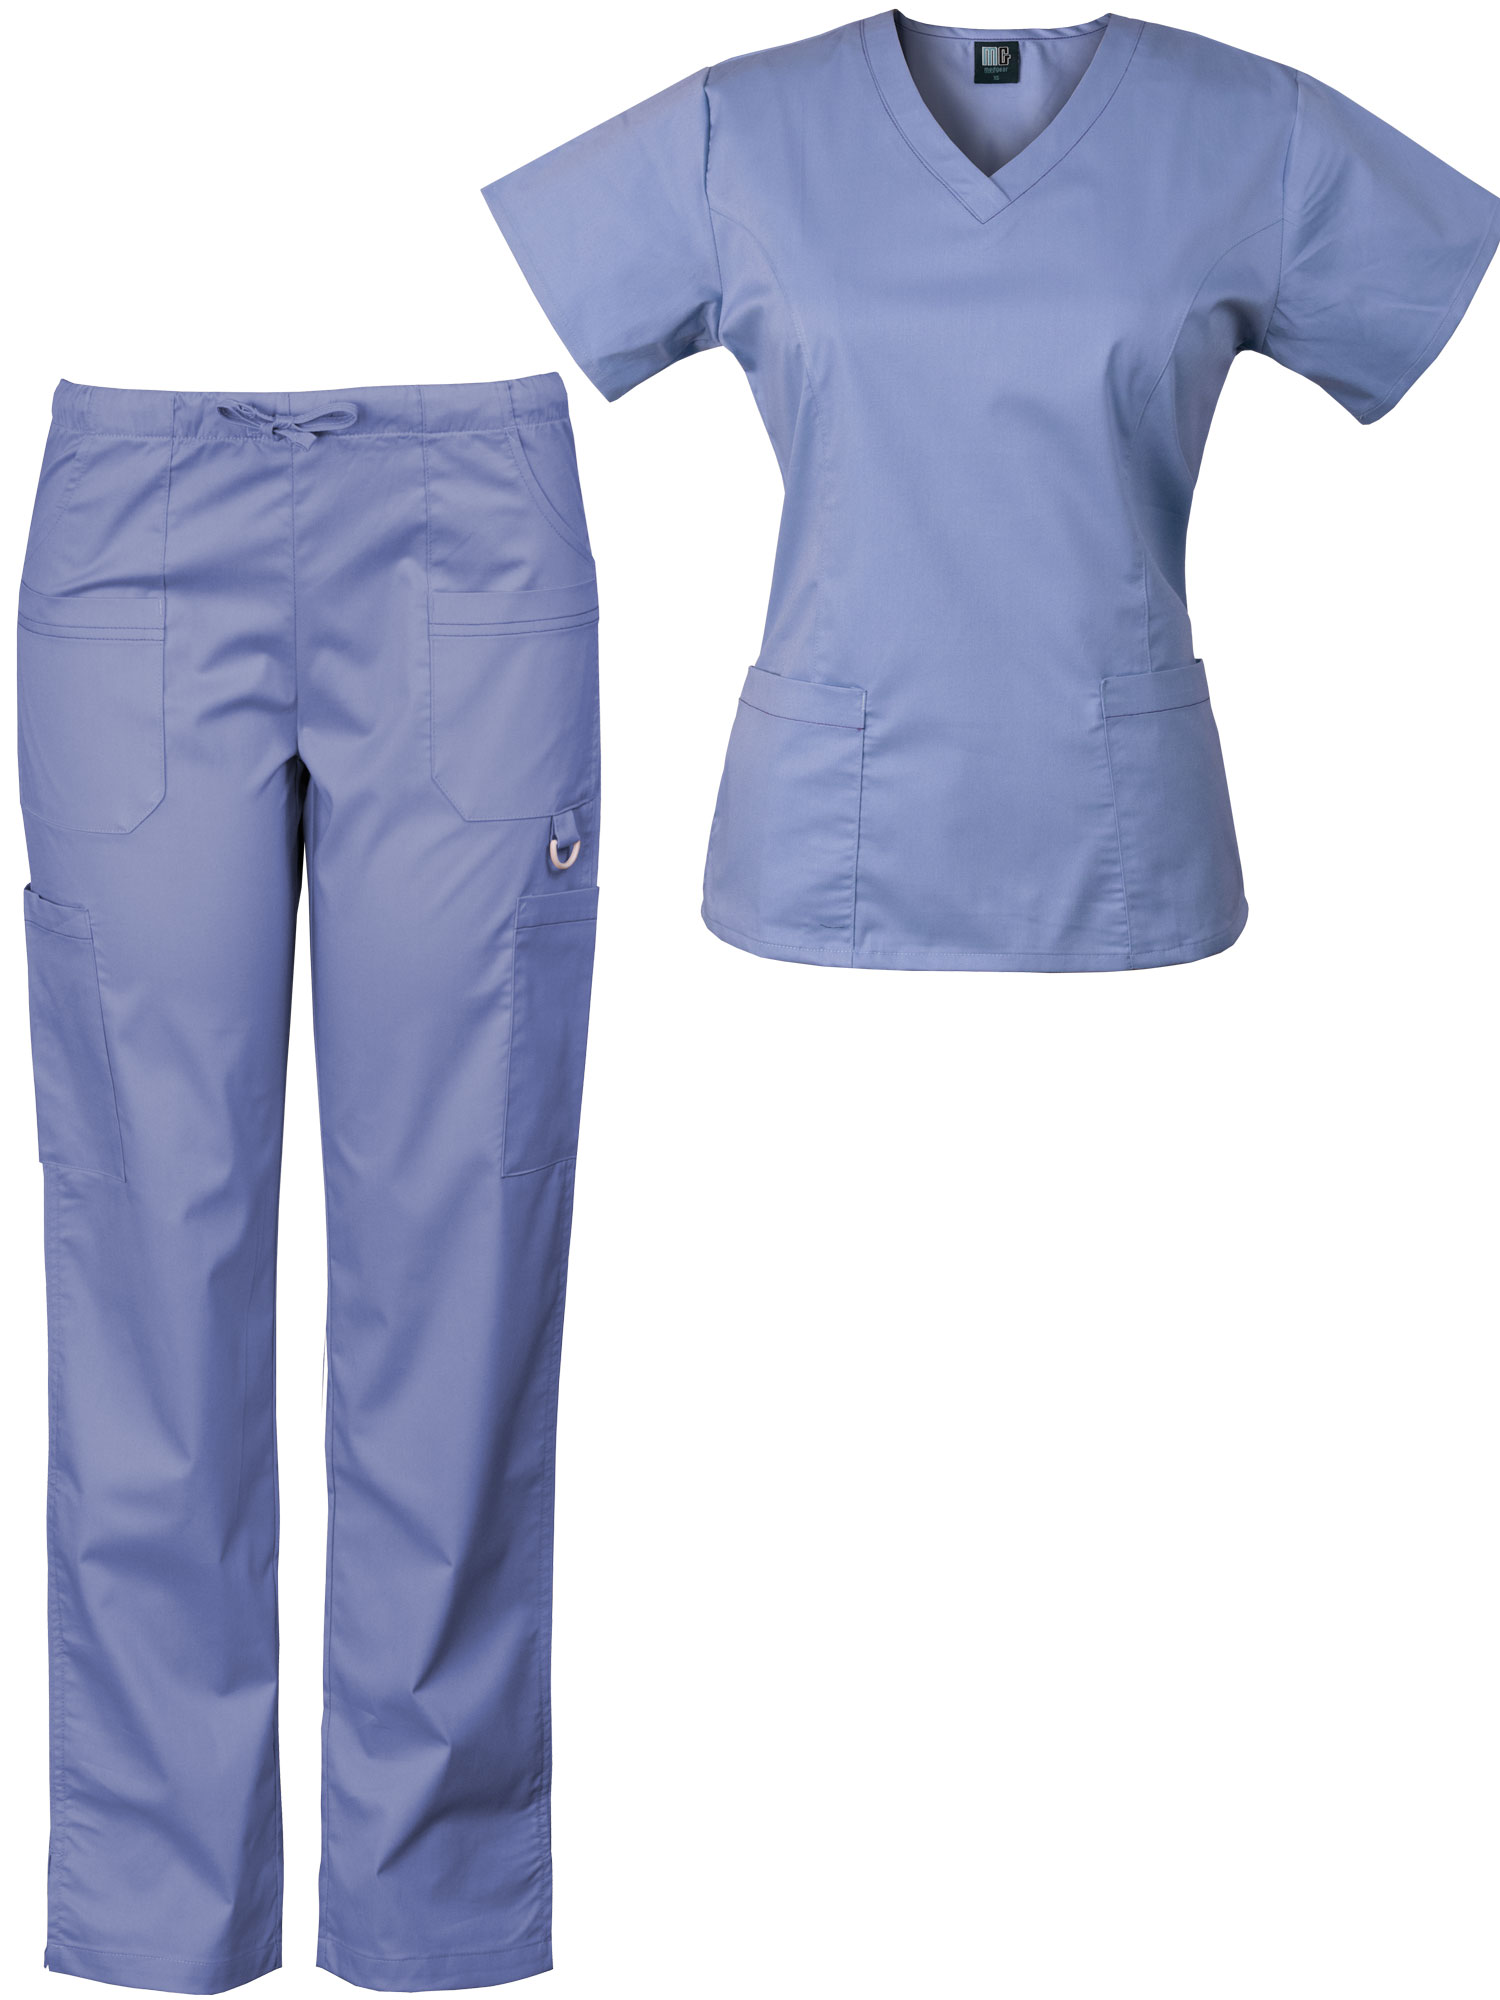 2a0ffea467a Women'€™s Eversoft 2-Way Stretch Medical Scrub Set, Style 7895ST